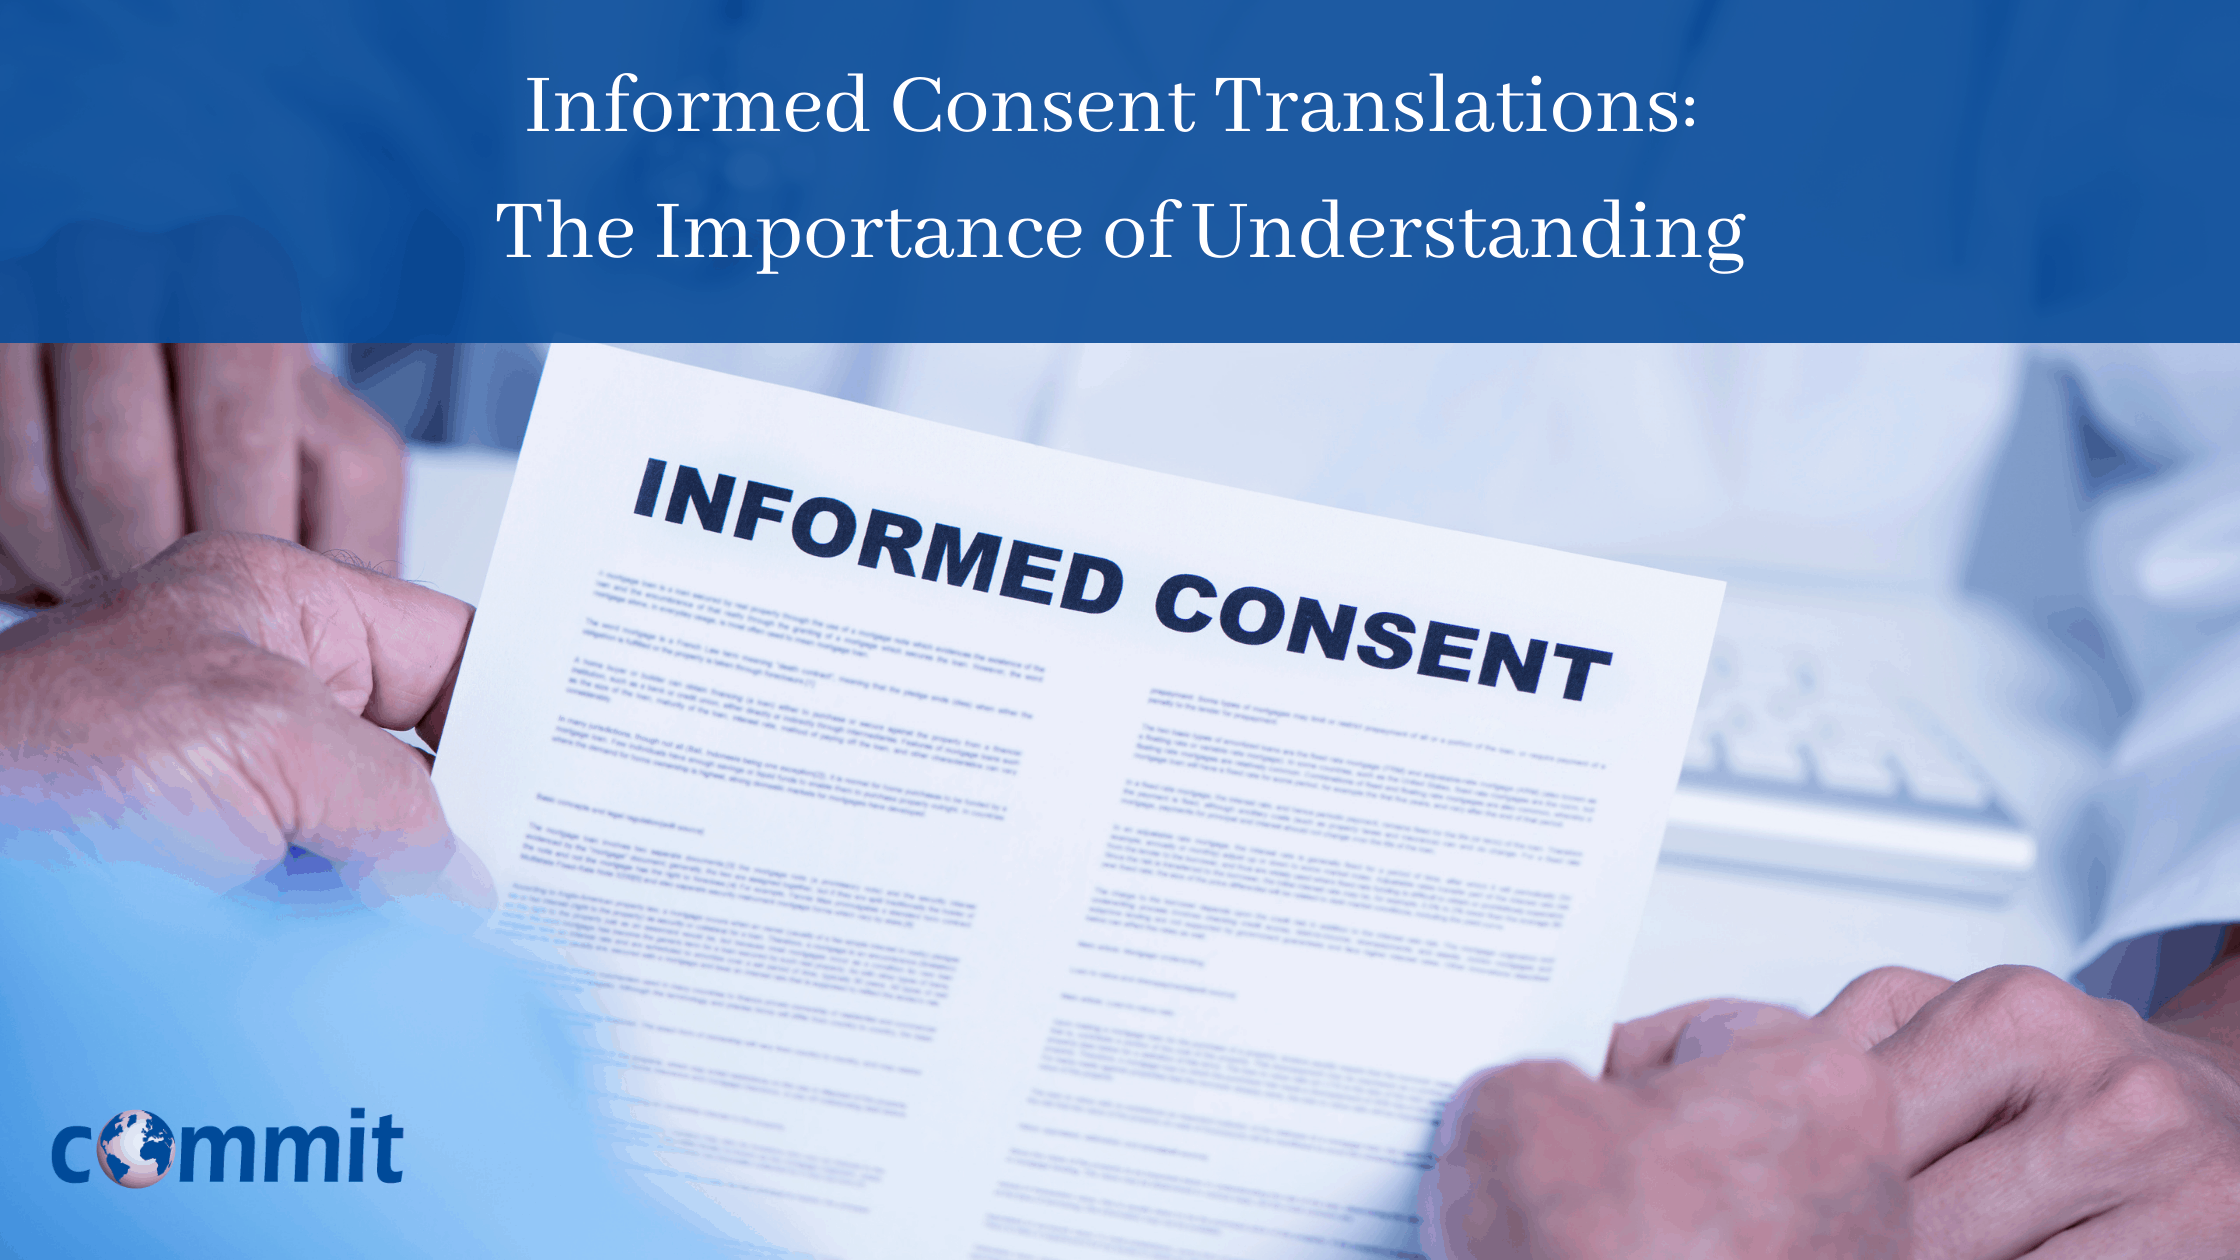 Informed Consent Translations: The Importance of Understanding